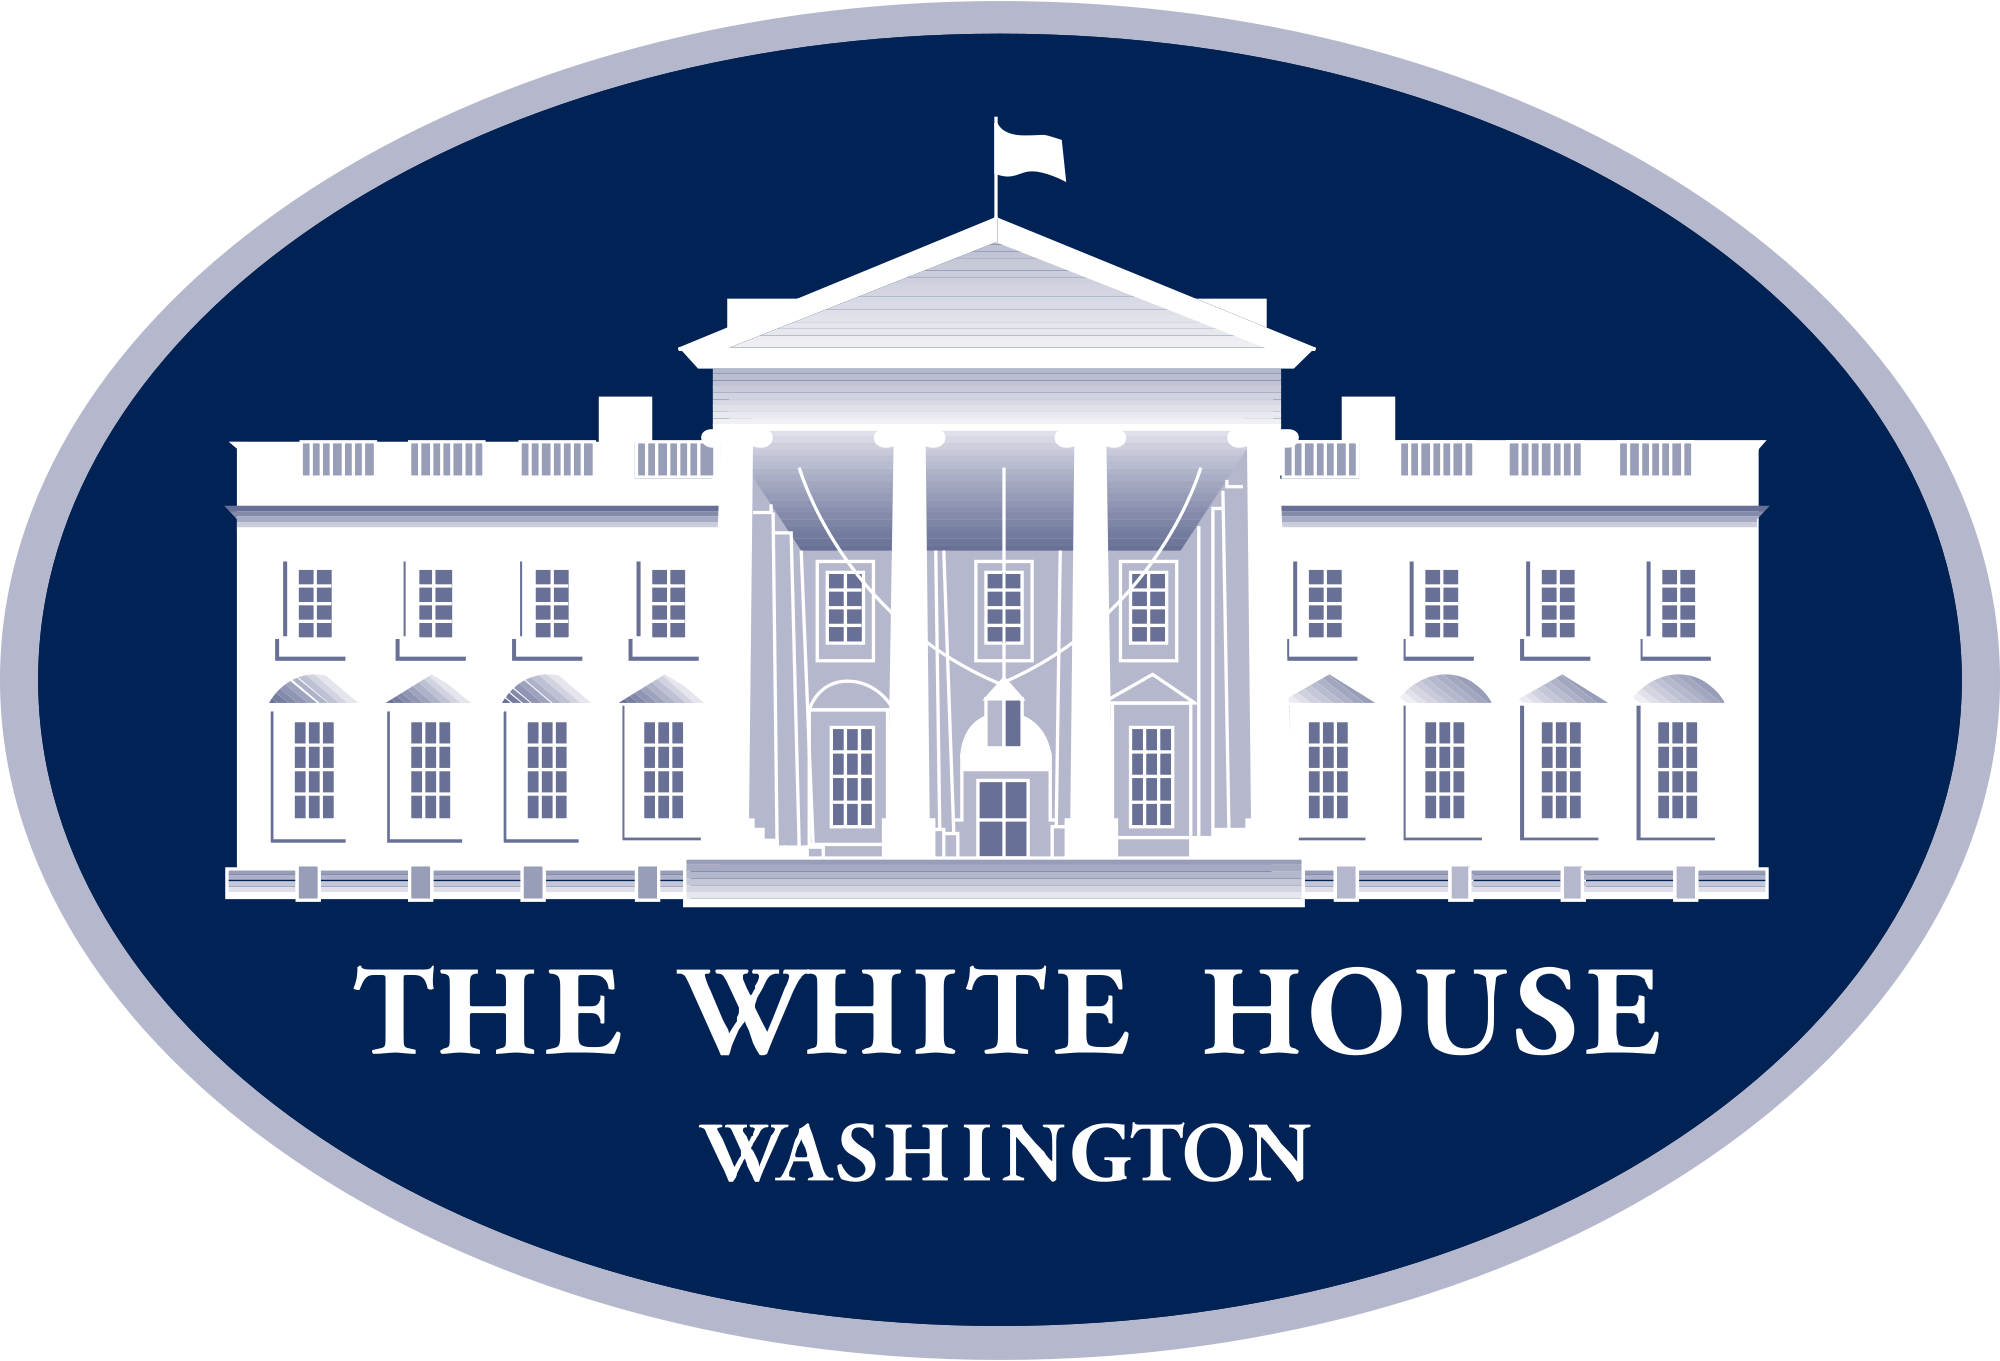 The White House: How the New Budget will Affect Infrastructure and Engineering